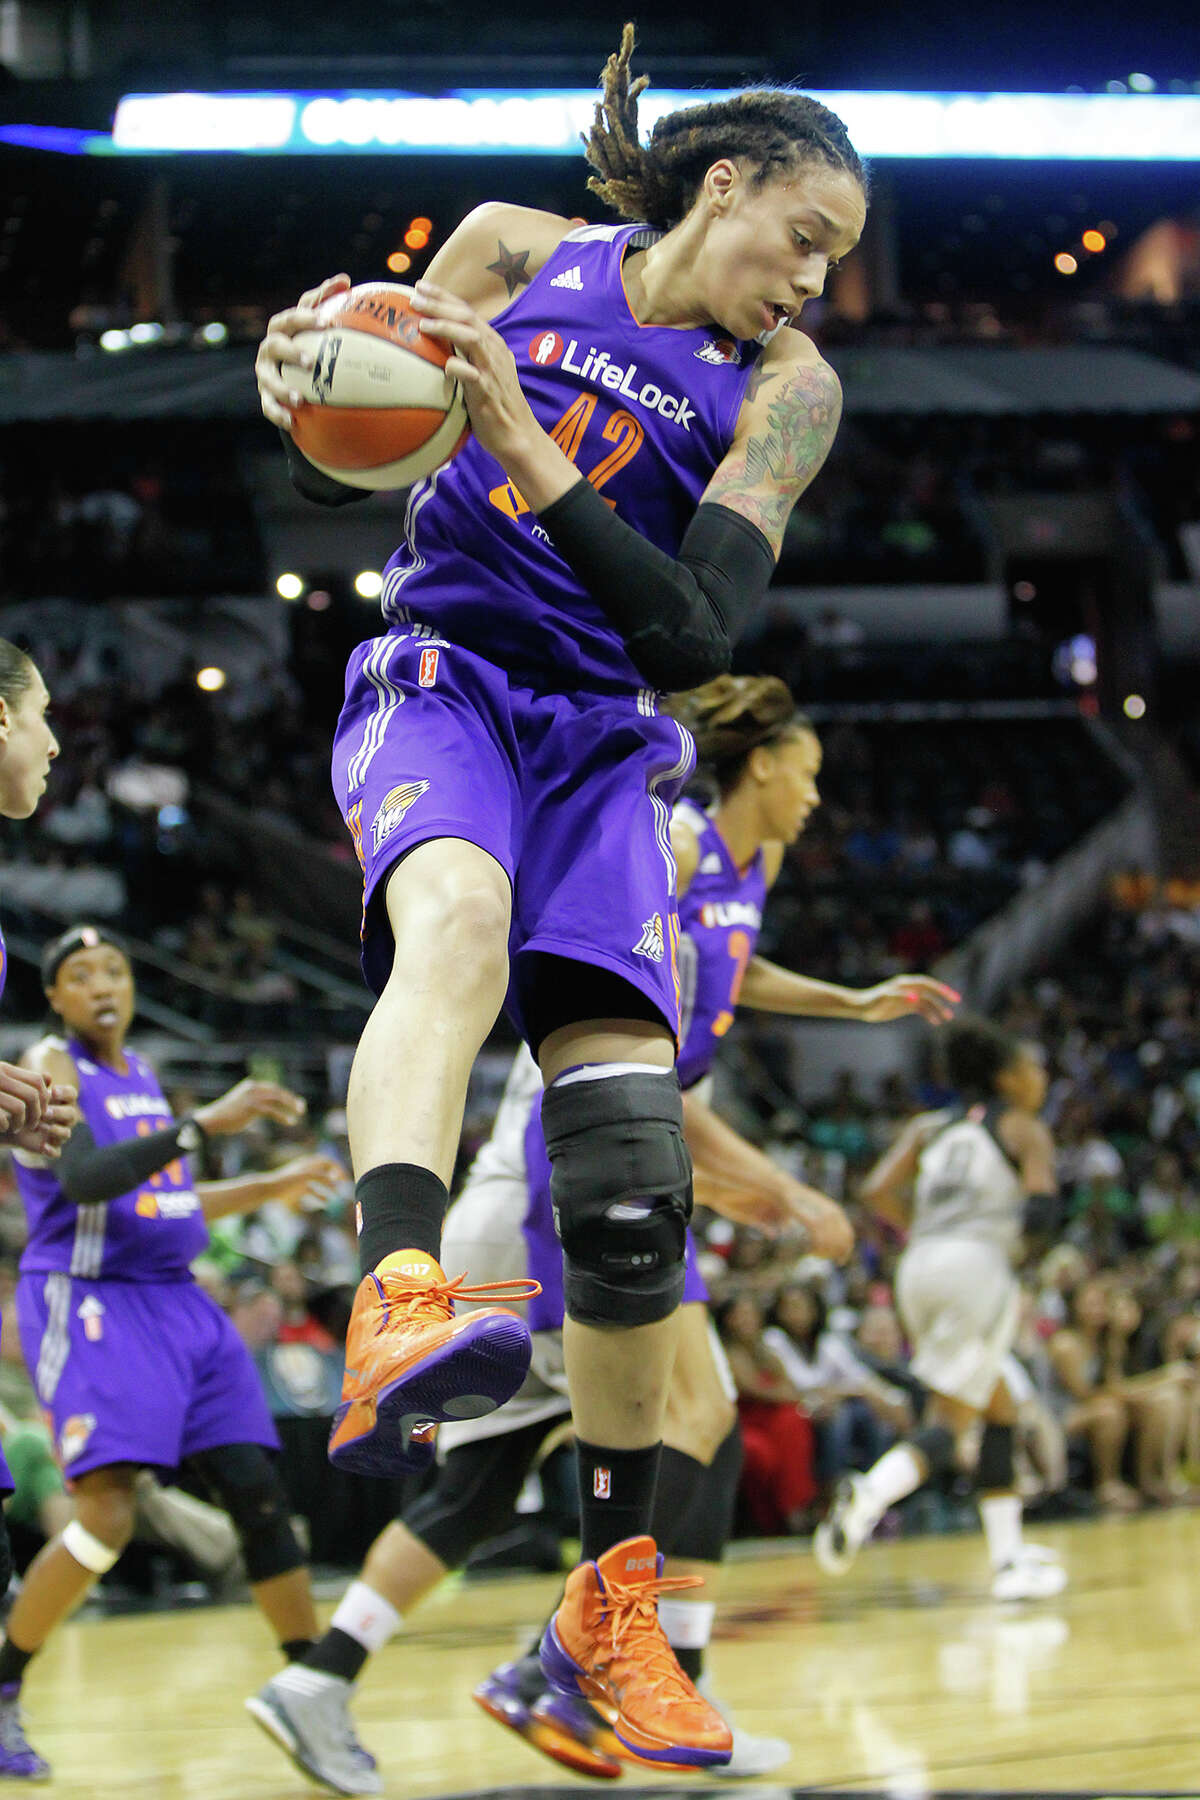 Phoenix's Brittney Griner pulls down a rebound in the first half of the Silver Stars game with the Phoenix Mercury at the AT&T Center on Tuesday, June 25, 2013. The game was former Baylor standout Brittney Griner's first trip to play in her home state. The Mercury won the game 83-77. MARVIN PFEIFFER/ mpfeiffer@express-news.net